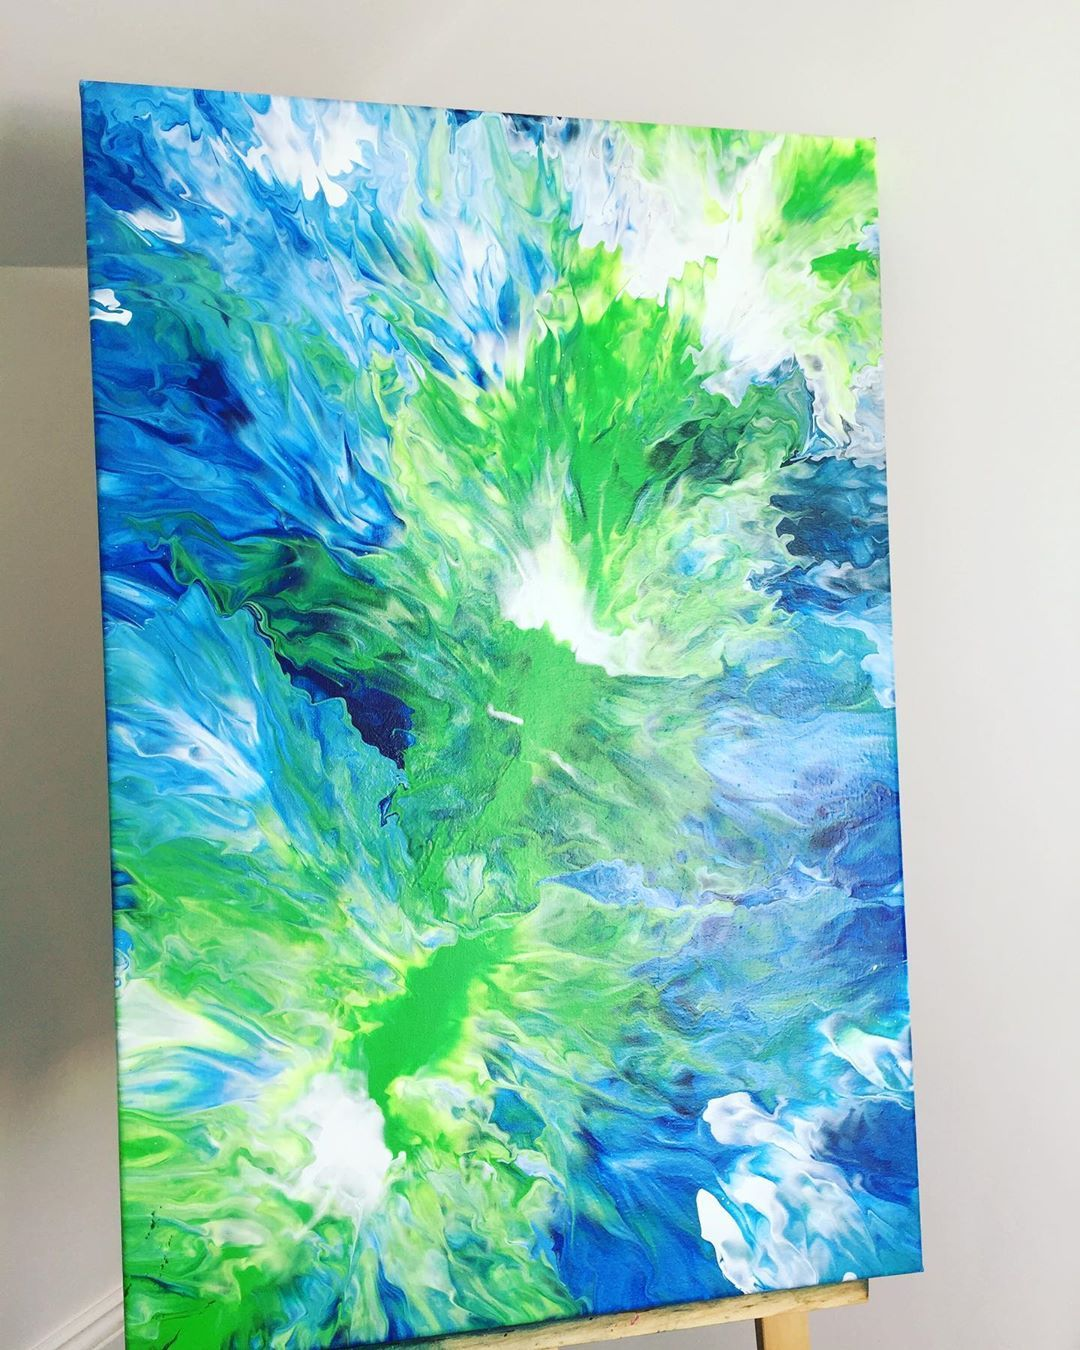 Flood abstract on instagram beautiful lime green crushes